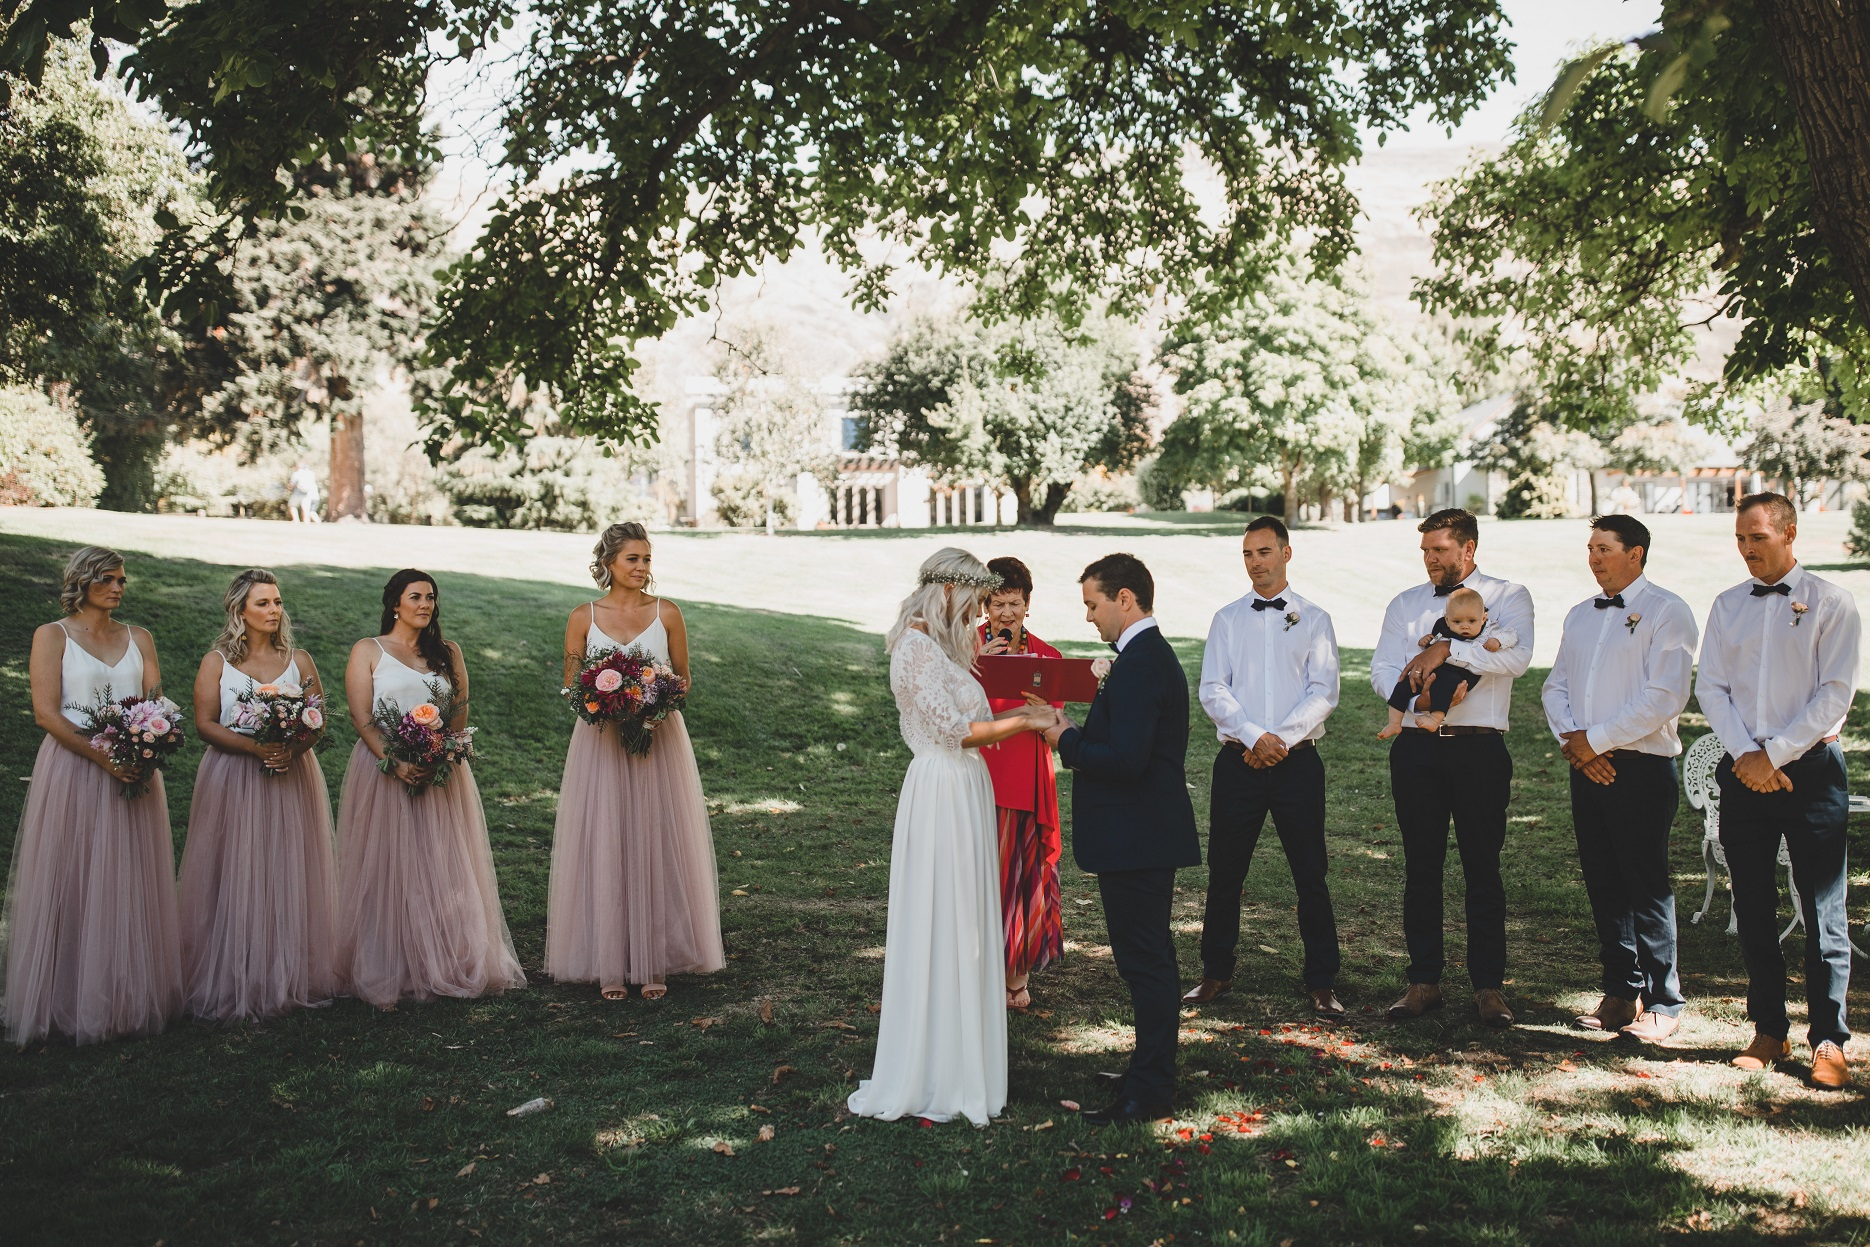 Queenstown and Wanaka wedding planning, styling and florals